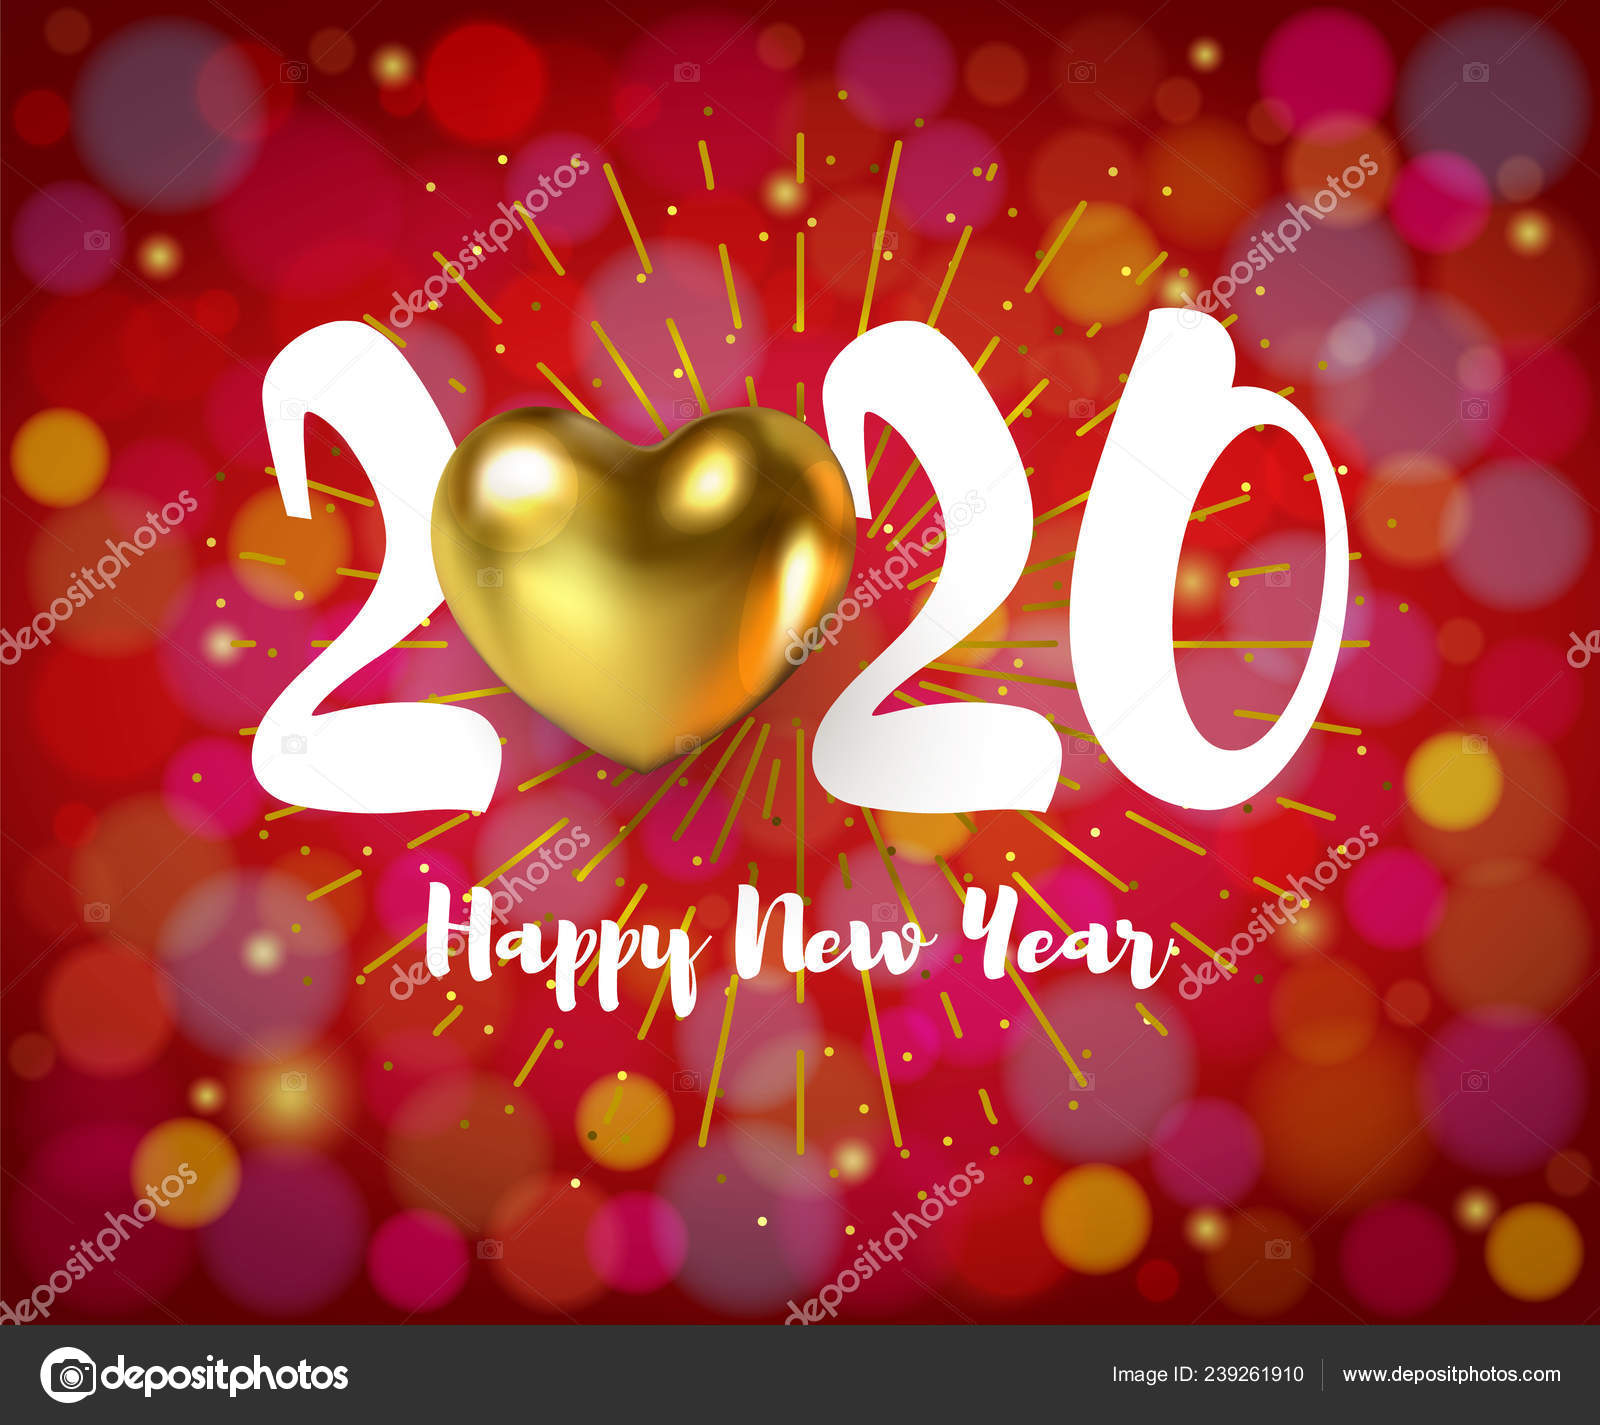 2020 Merry Christmas, Happy New Year poster with Golden Heart on